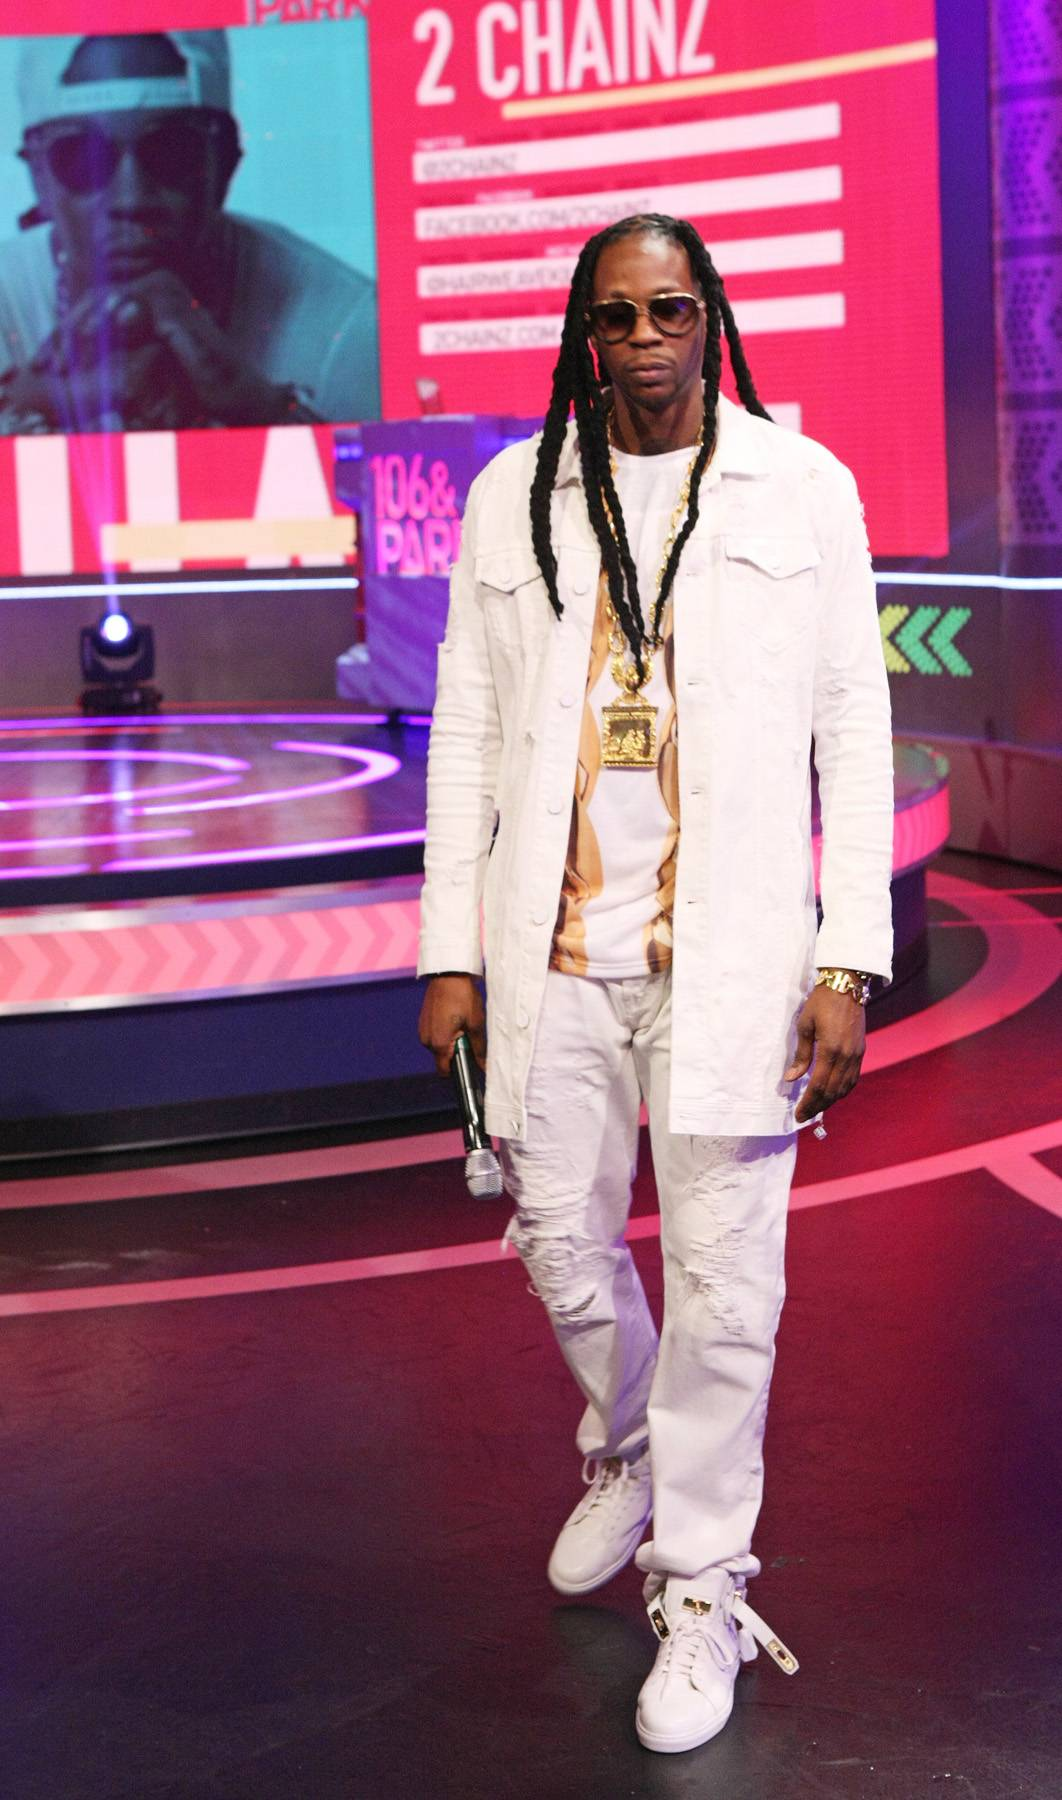 What Ya Say? - 2 Chainz is ready for anything on 106. (Photo: Bennett Raglin/BET/Getty Images for BET)